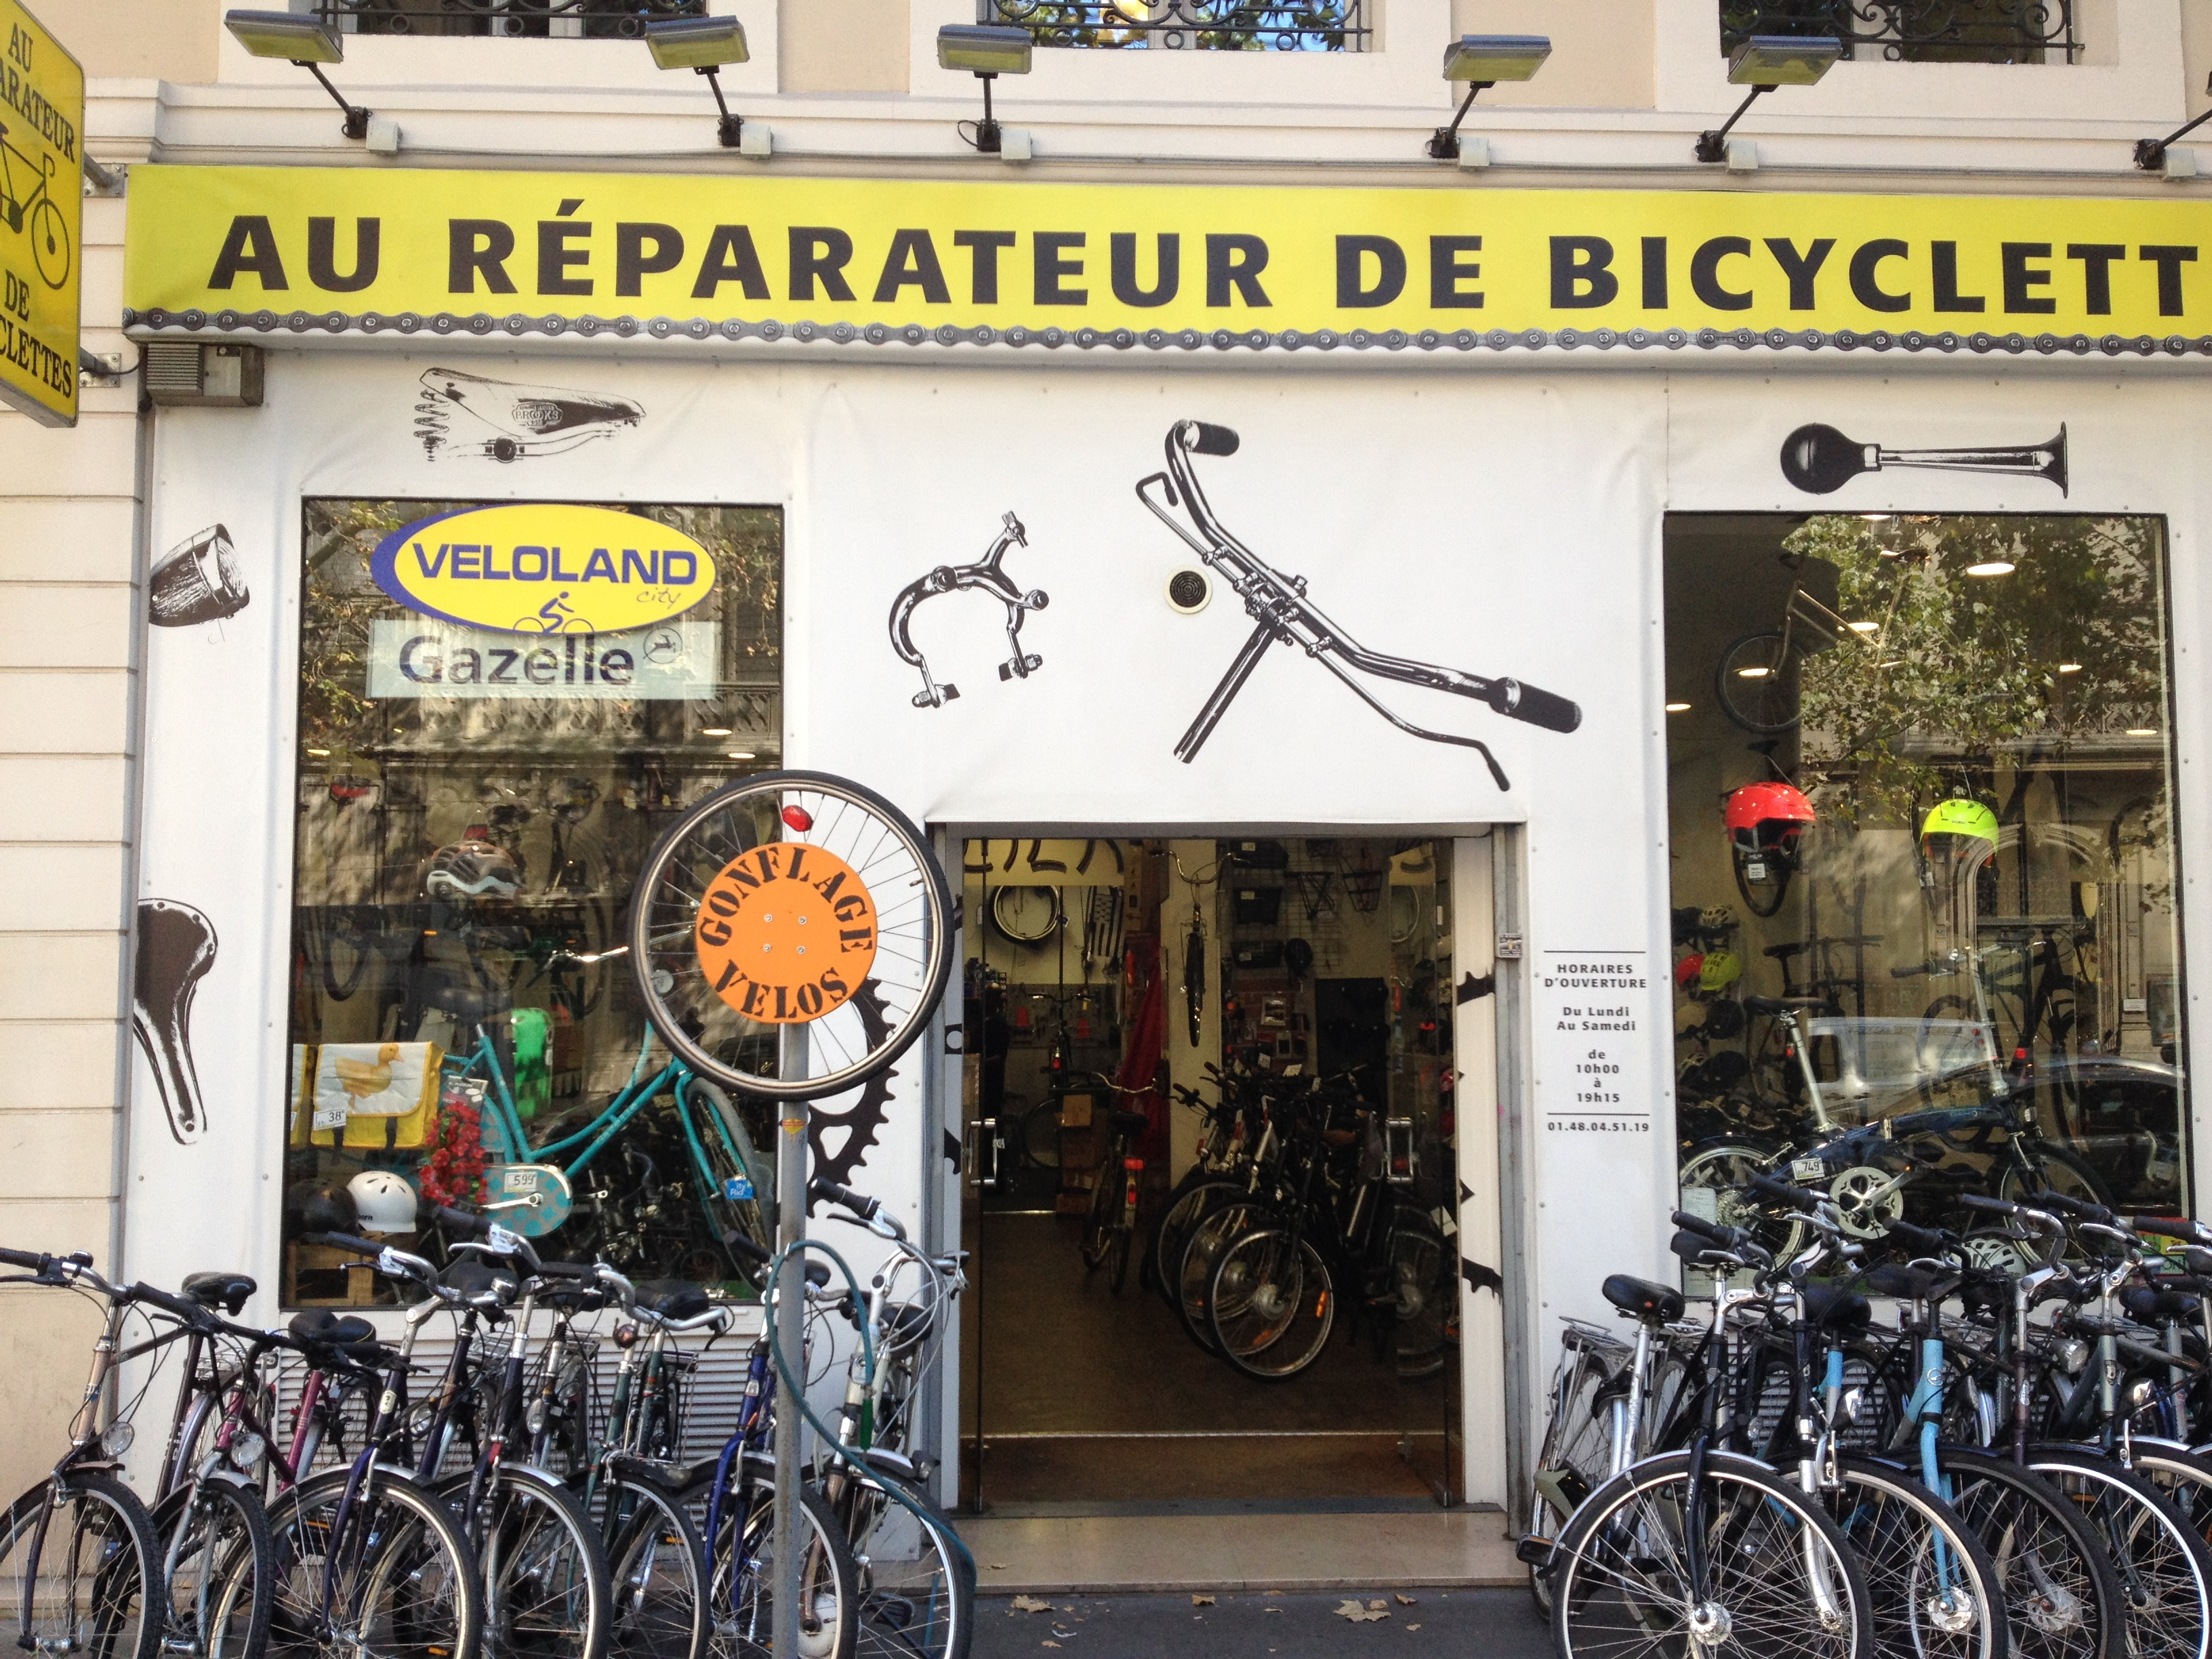 Paris Bicycle Repair Shop